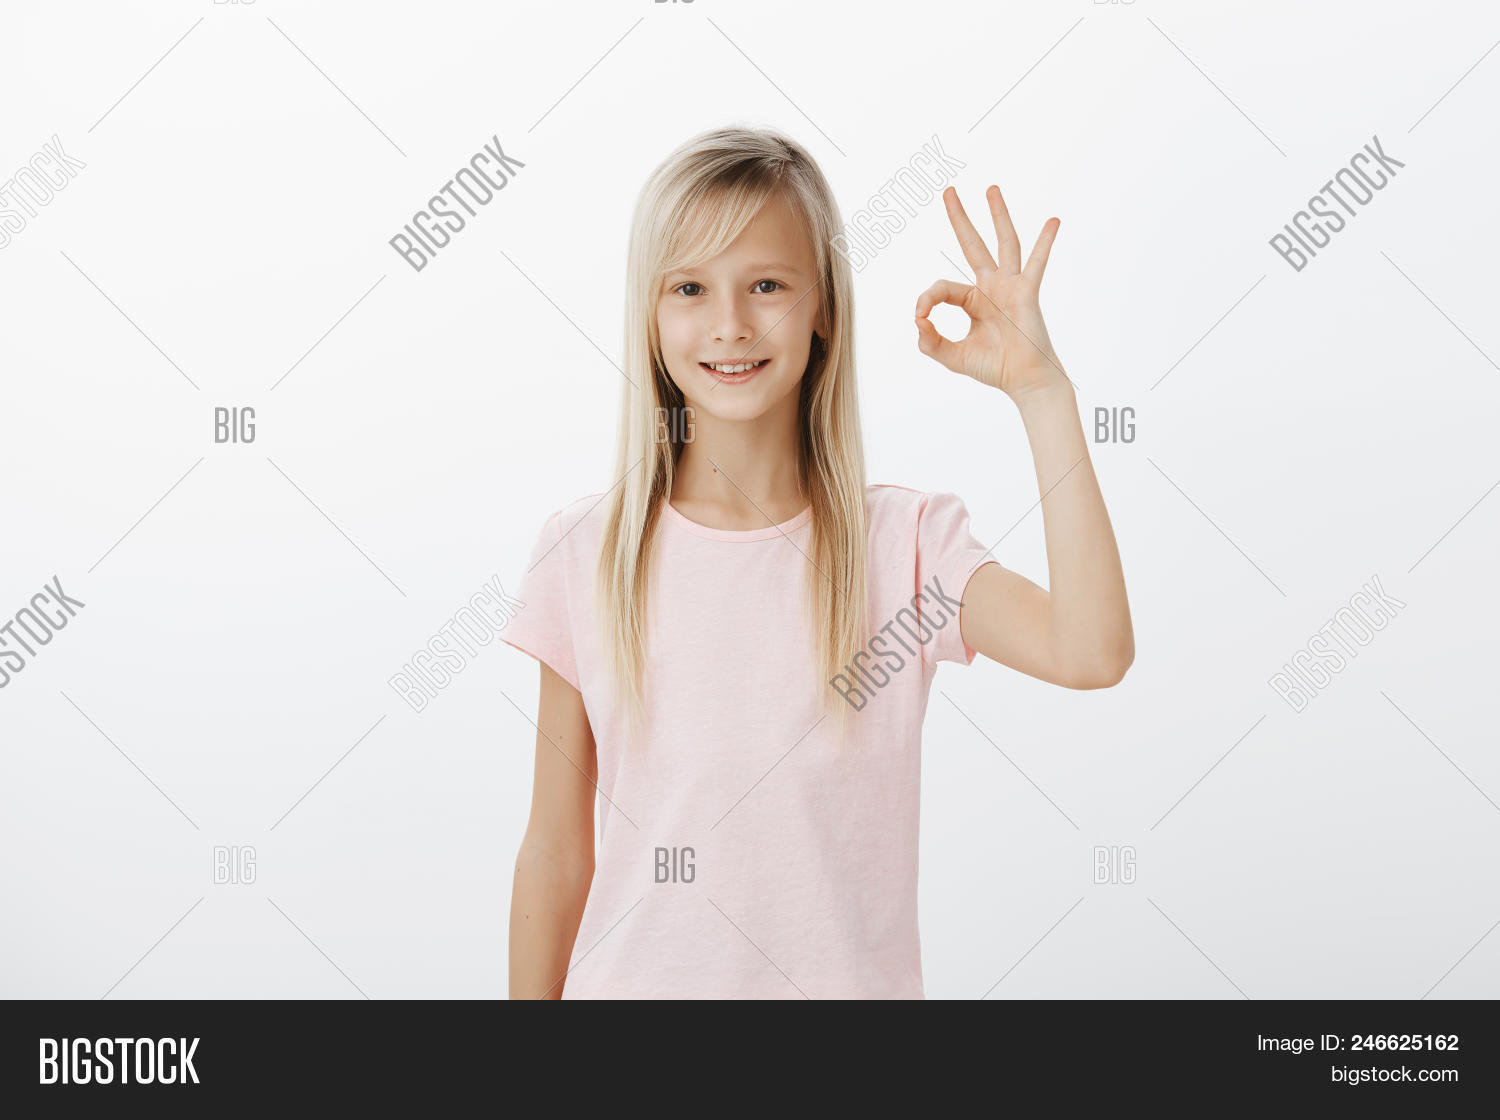 480652e54a1bc She got everything under control. Shot of confident adorable little girl  with blond hair, raising hand and showing ok sign, smiling broadly, liking  idea or ...